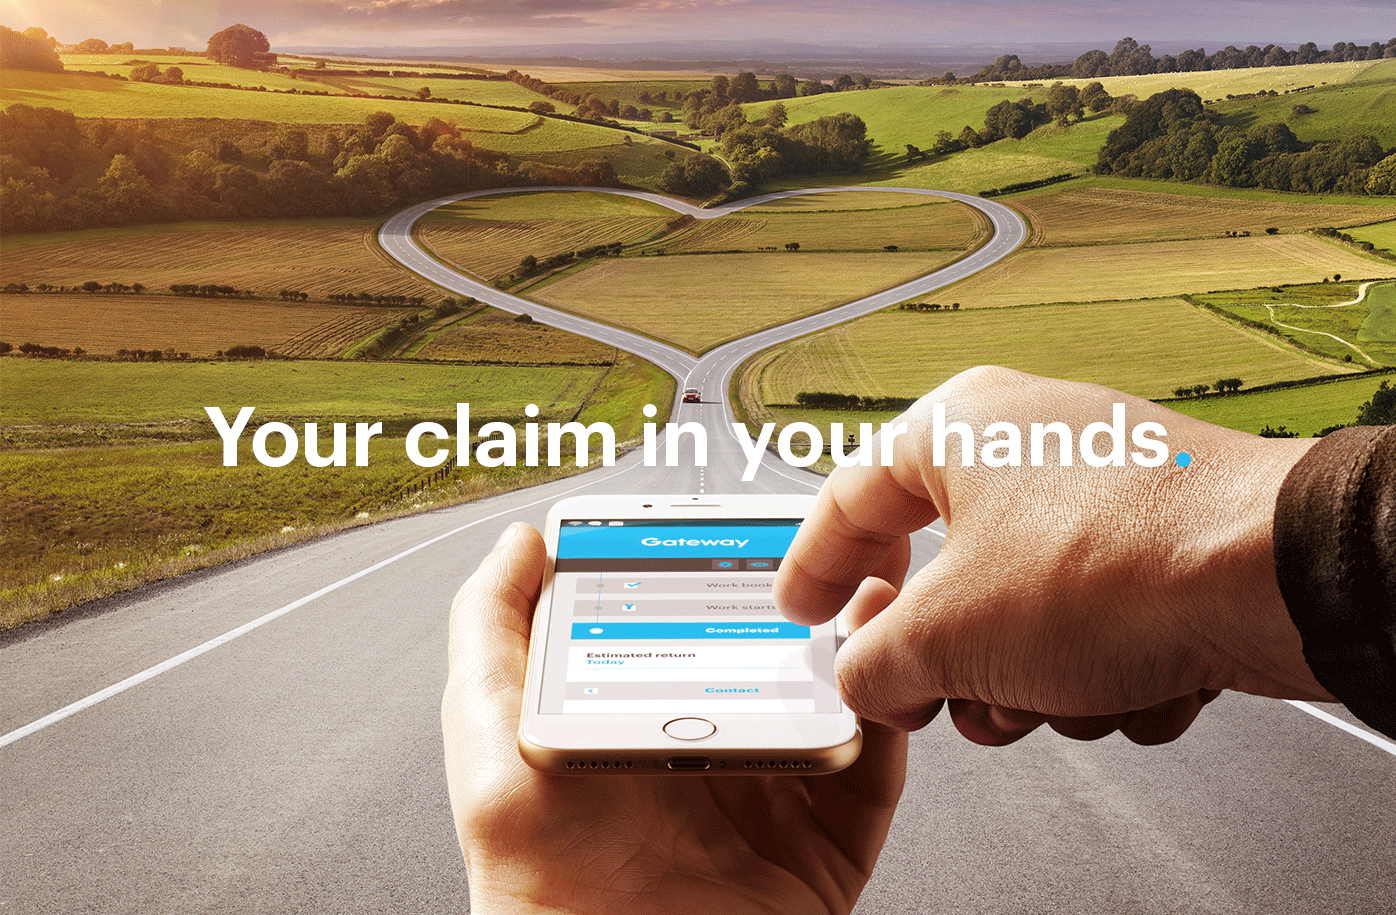 Photography showing your claim in your hands